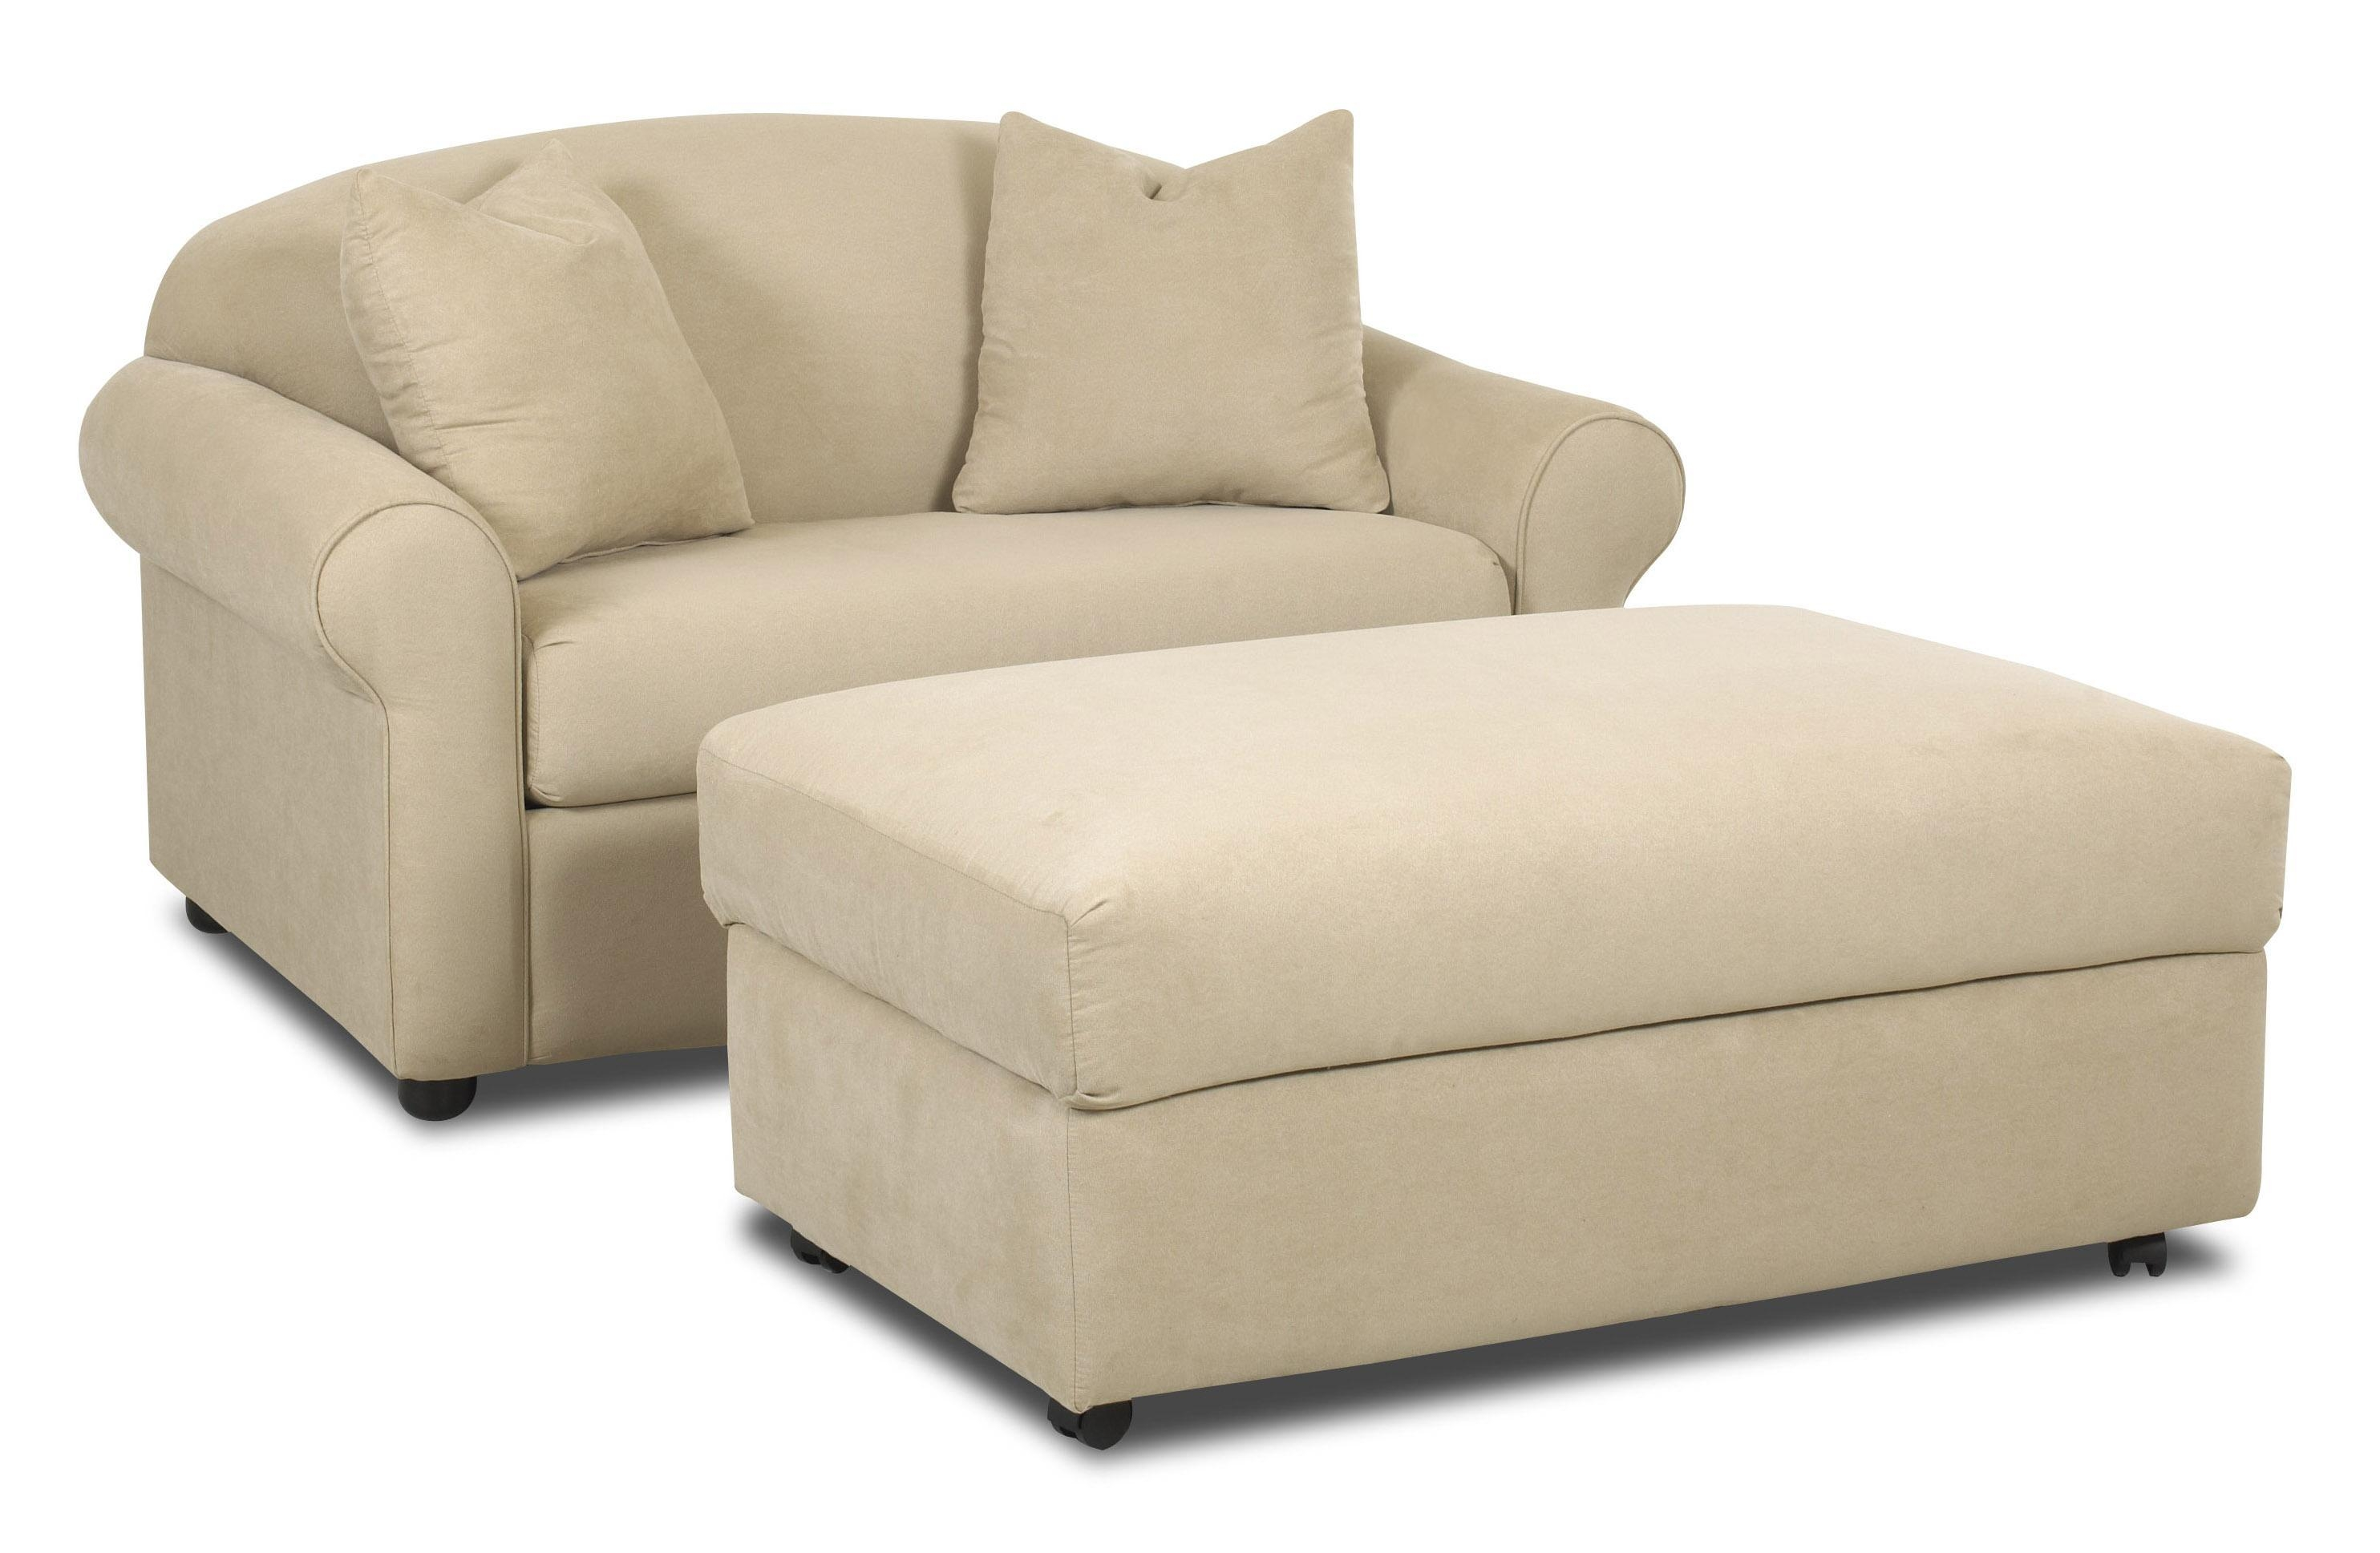 Sofas Center : Small Sofa Chair Sectional Chaise With Lounge 37 Within Small Sofas And Chairs (Image 18 of 20)